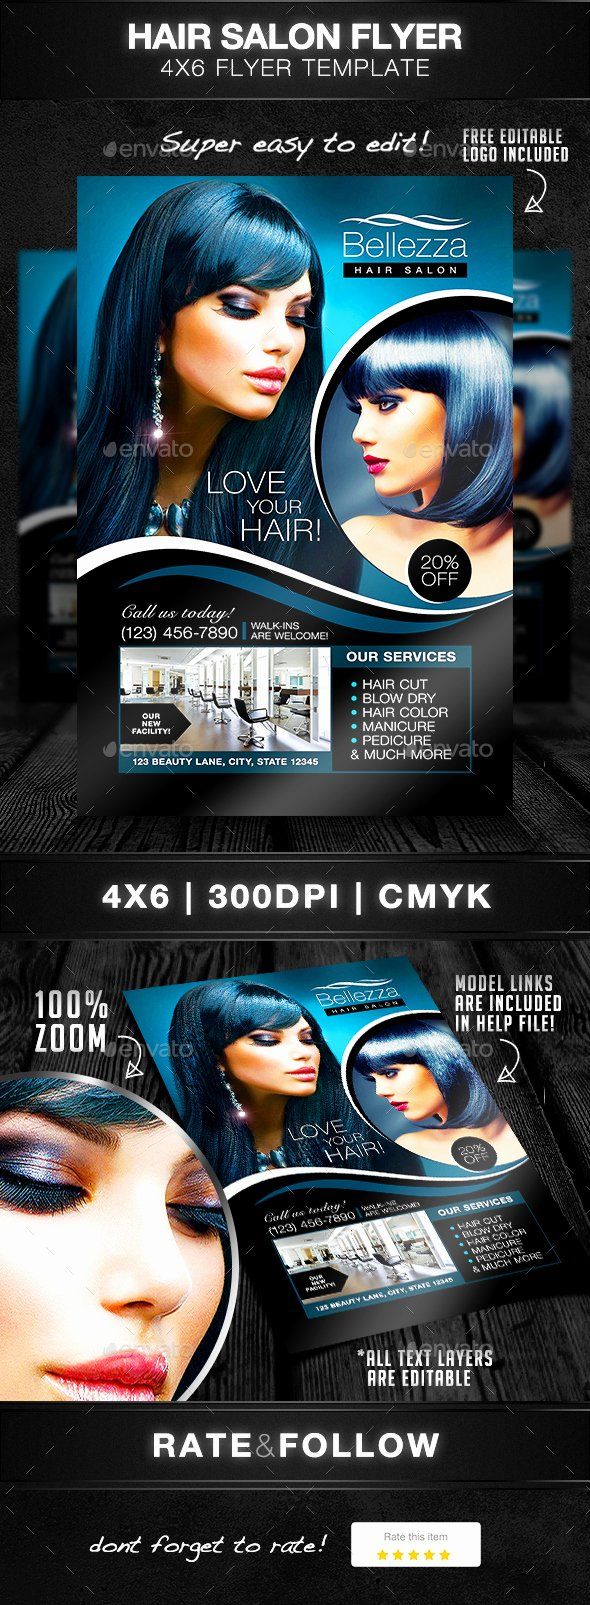 Hair Flyers Free Template Lovely Hair Salon Flyer Template by Designsbydior